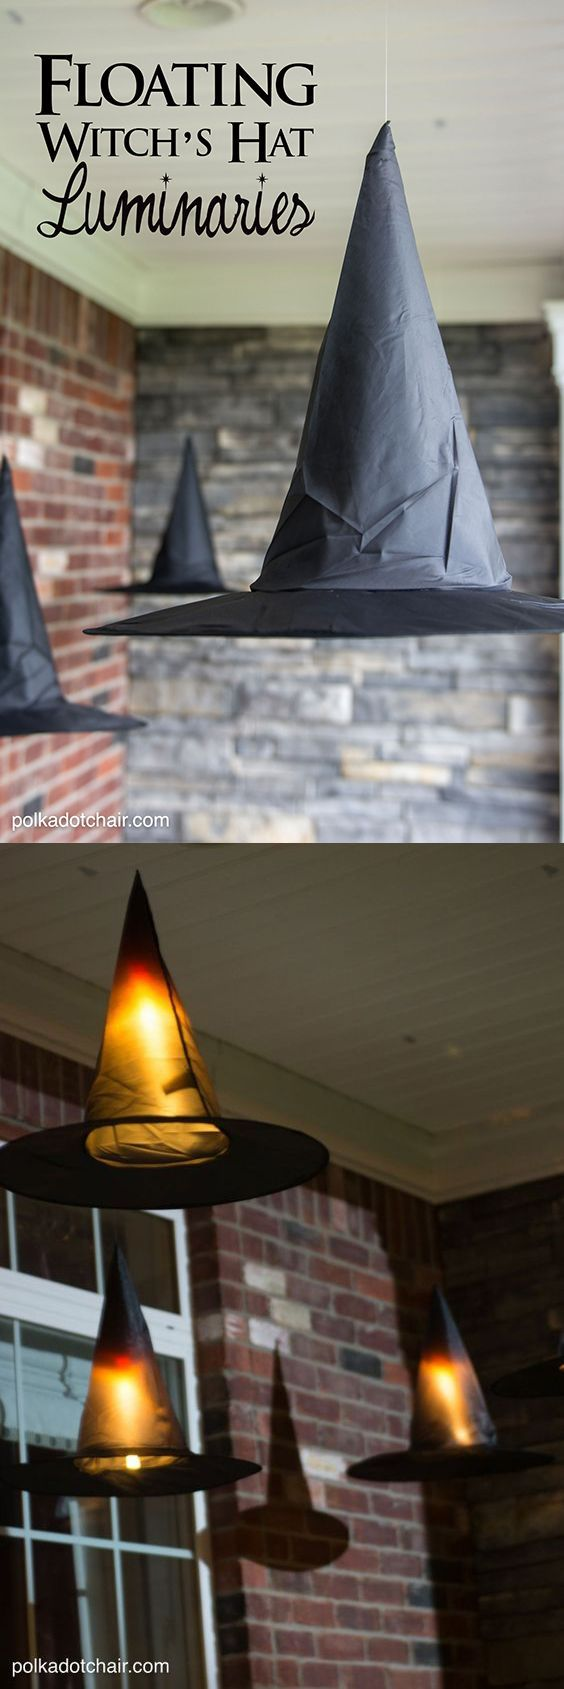 Uncategorized Decoration For Halloween Ideas best 25 halloween decorating ideas on pinterest diy floating witch hat luminaries